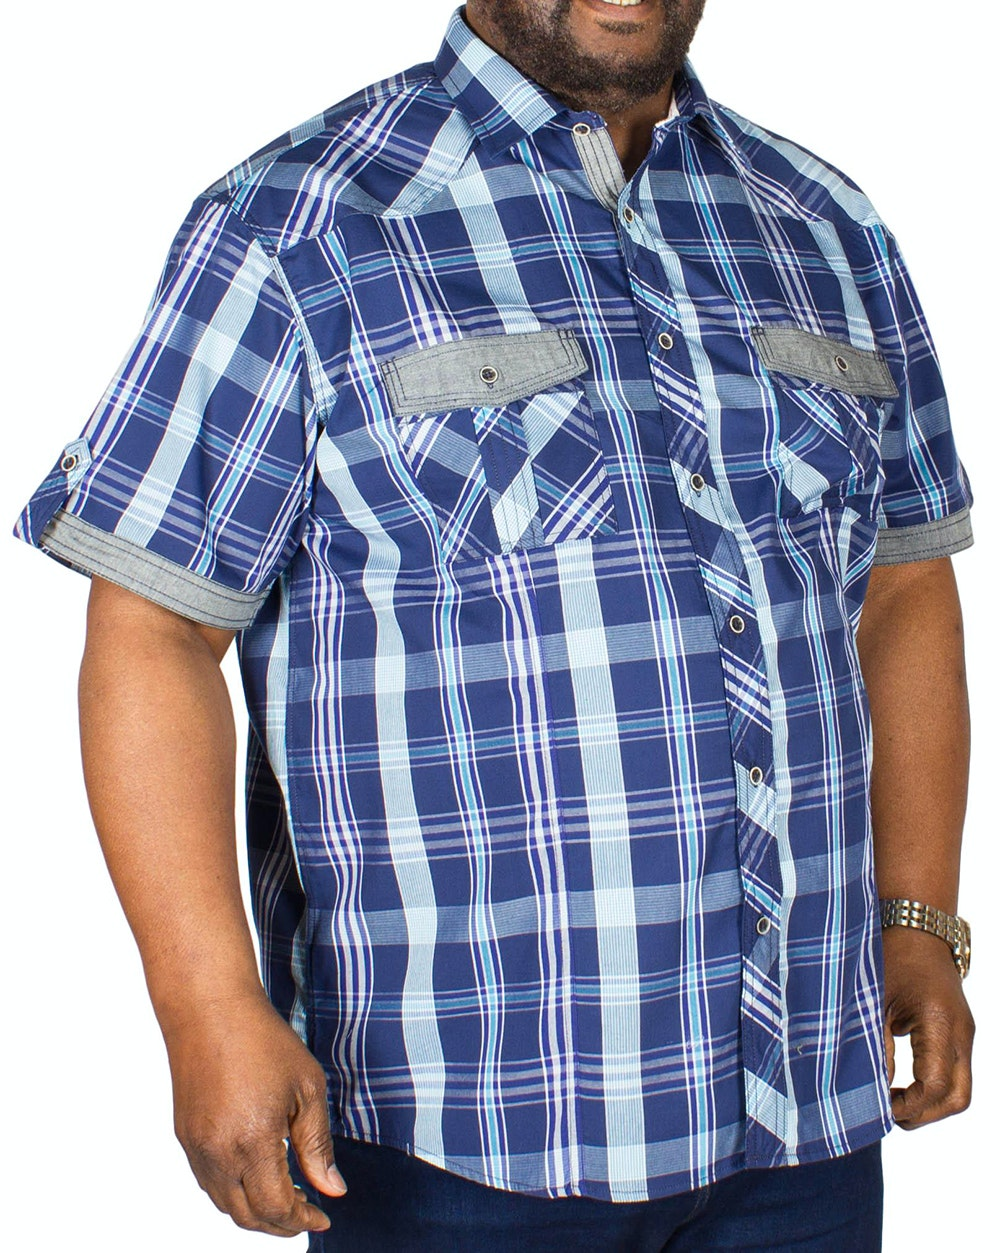 KAM Modern Check Shirt Navy